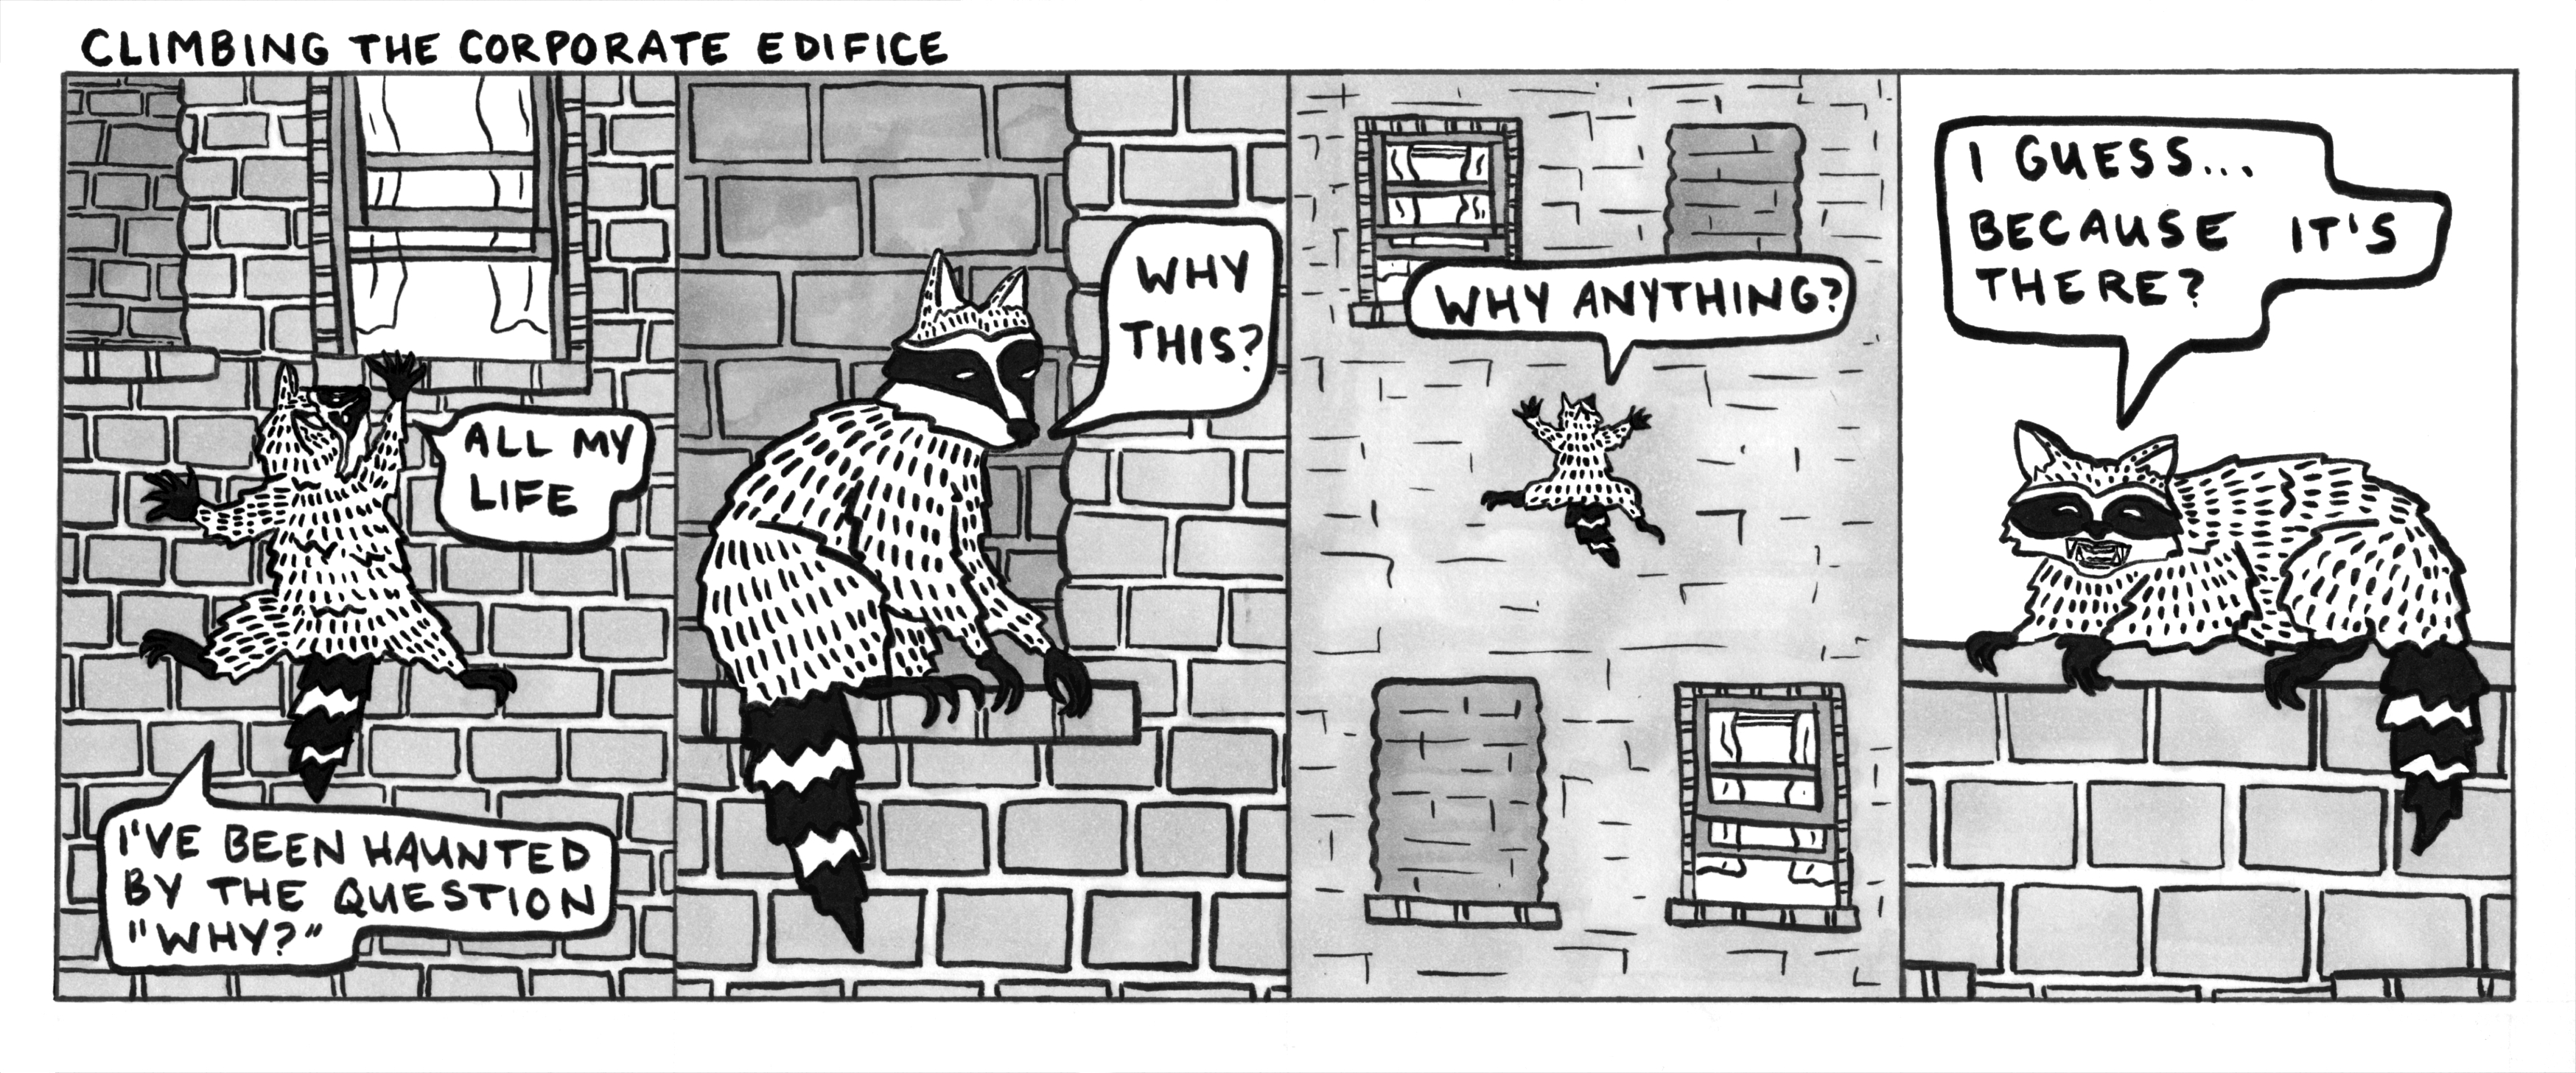 Remember that raccoon that climbed up an office building in, I think, Minnesota?